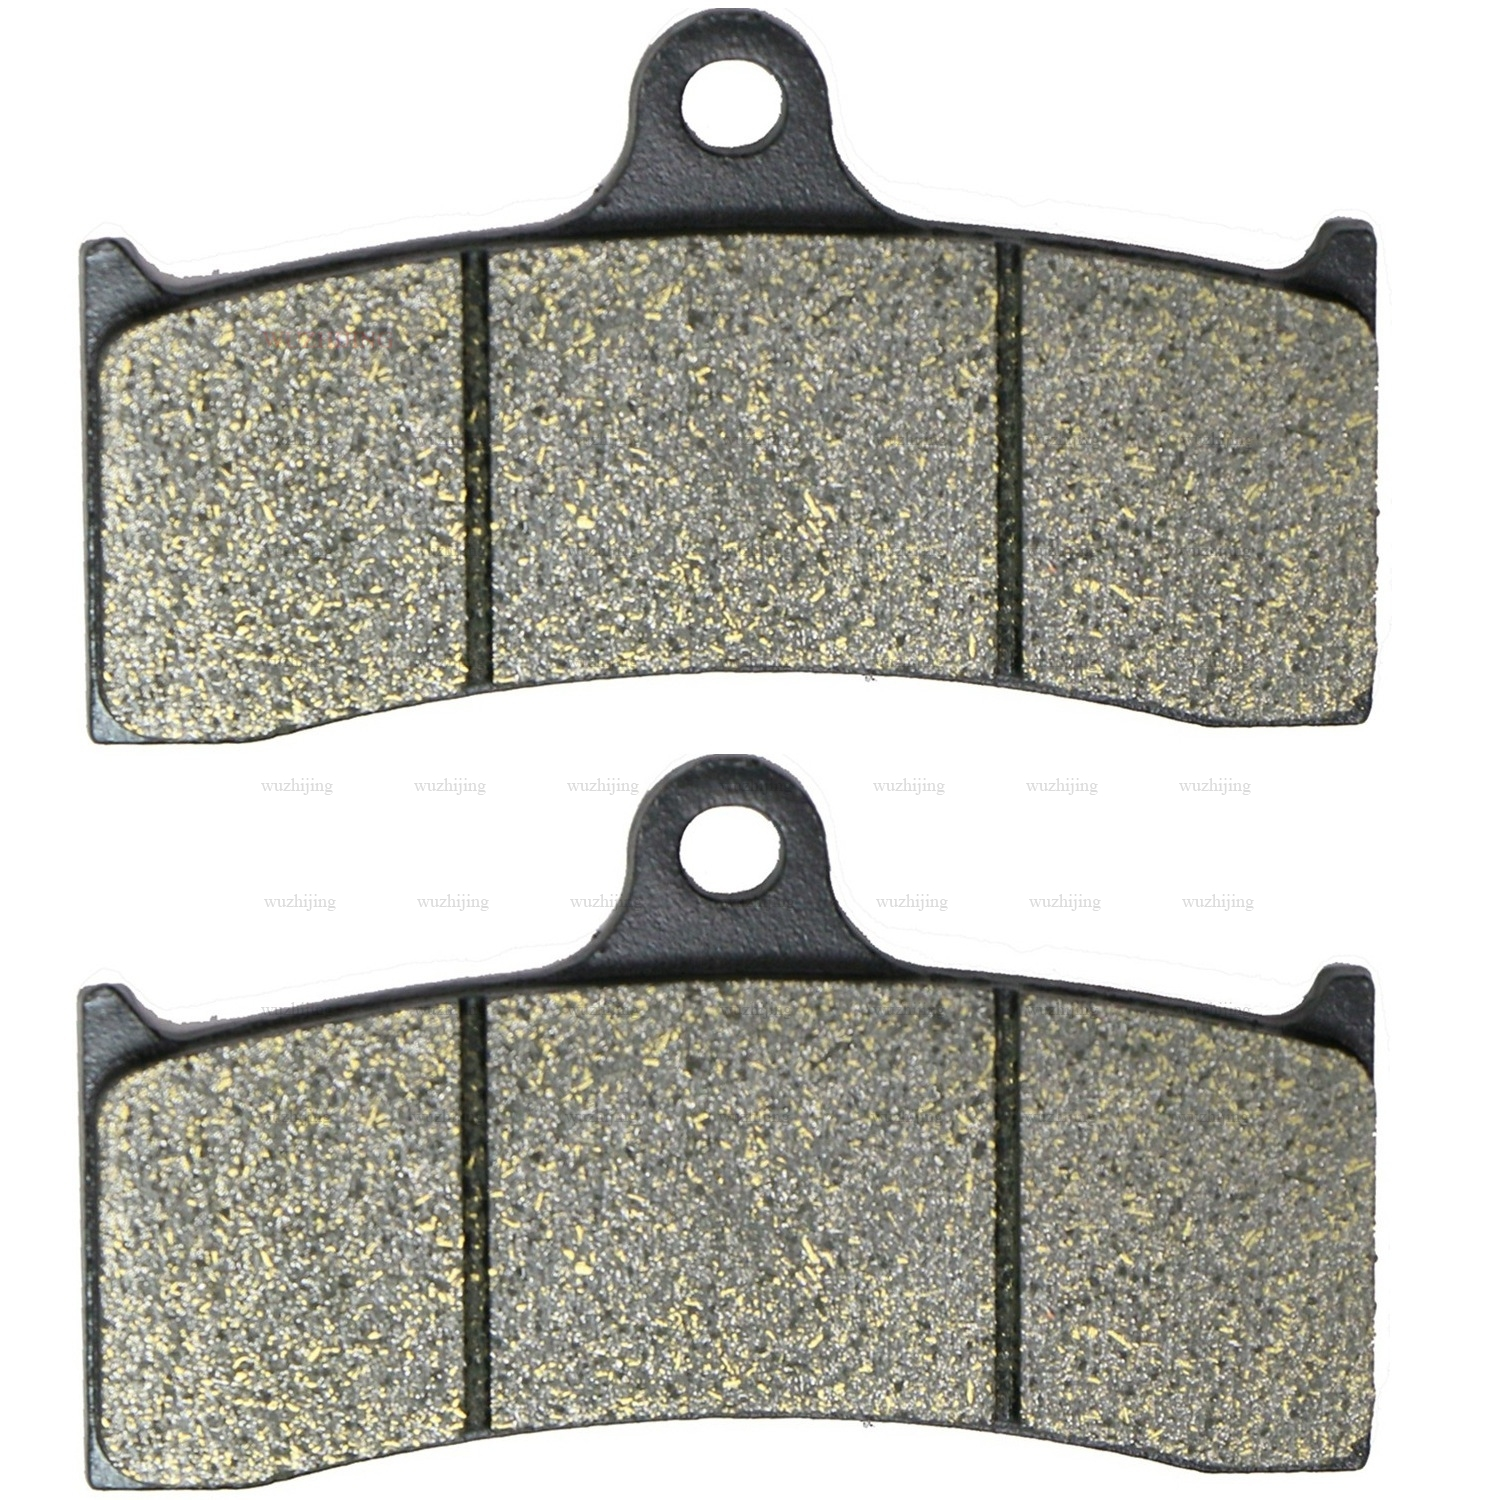 Brake Pads Set for AMERICAN IRON HORSE 6 piston 02 BEHRINGER 6 piston HHI Hawg Halters 6 piston JAY BRAKE J-Four 300-44 4 piston ...